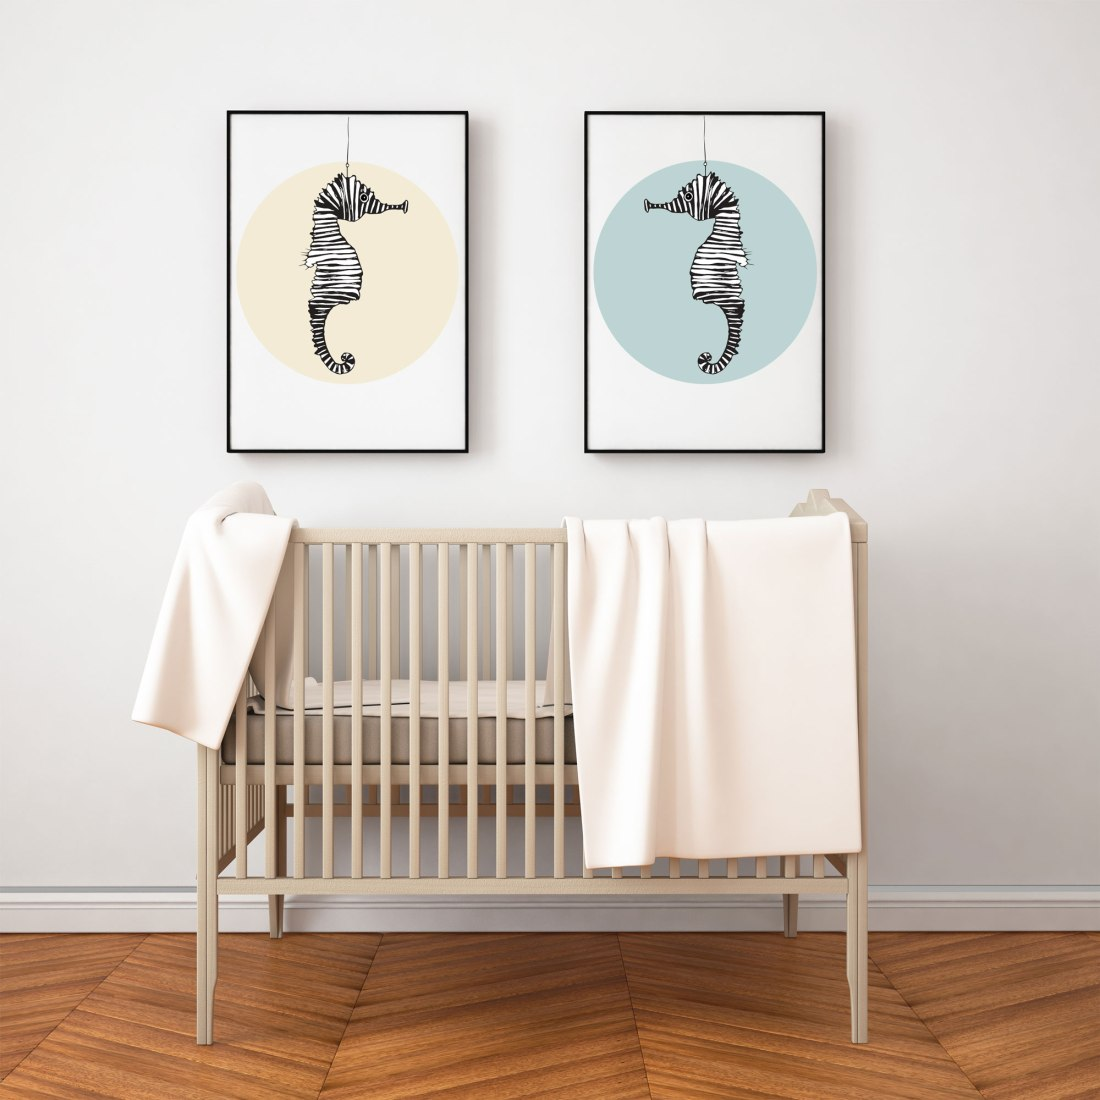 Customizable Art - Seahorse Illustration in Nursery Room - Wall Art for baby room